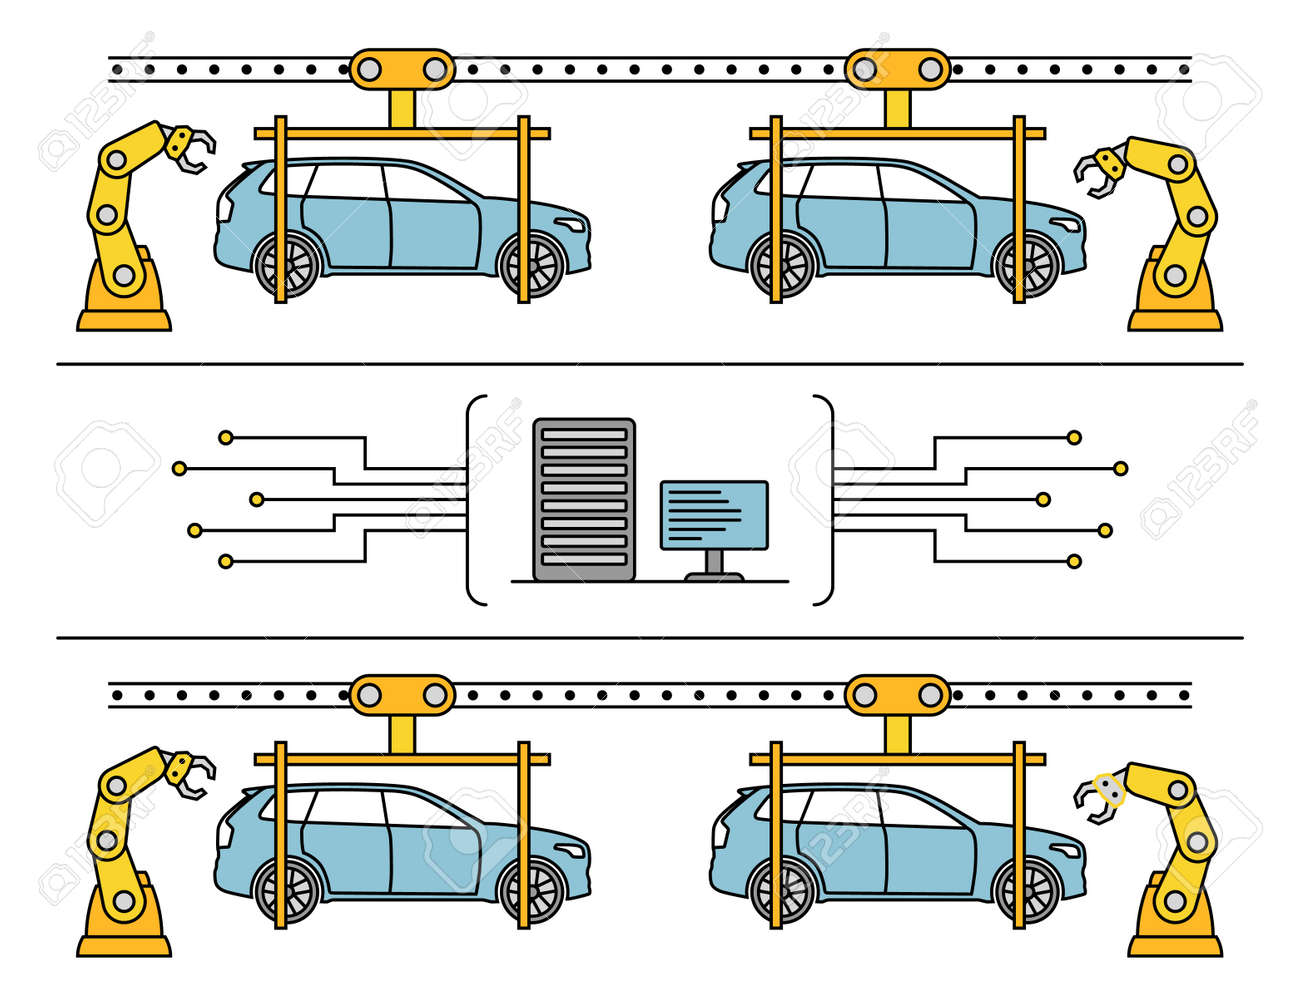 hight resolution of thin line style car assembly line automatic auto production conveyor robotic car machinery industry